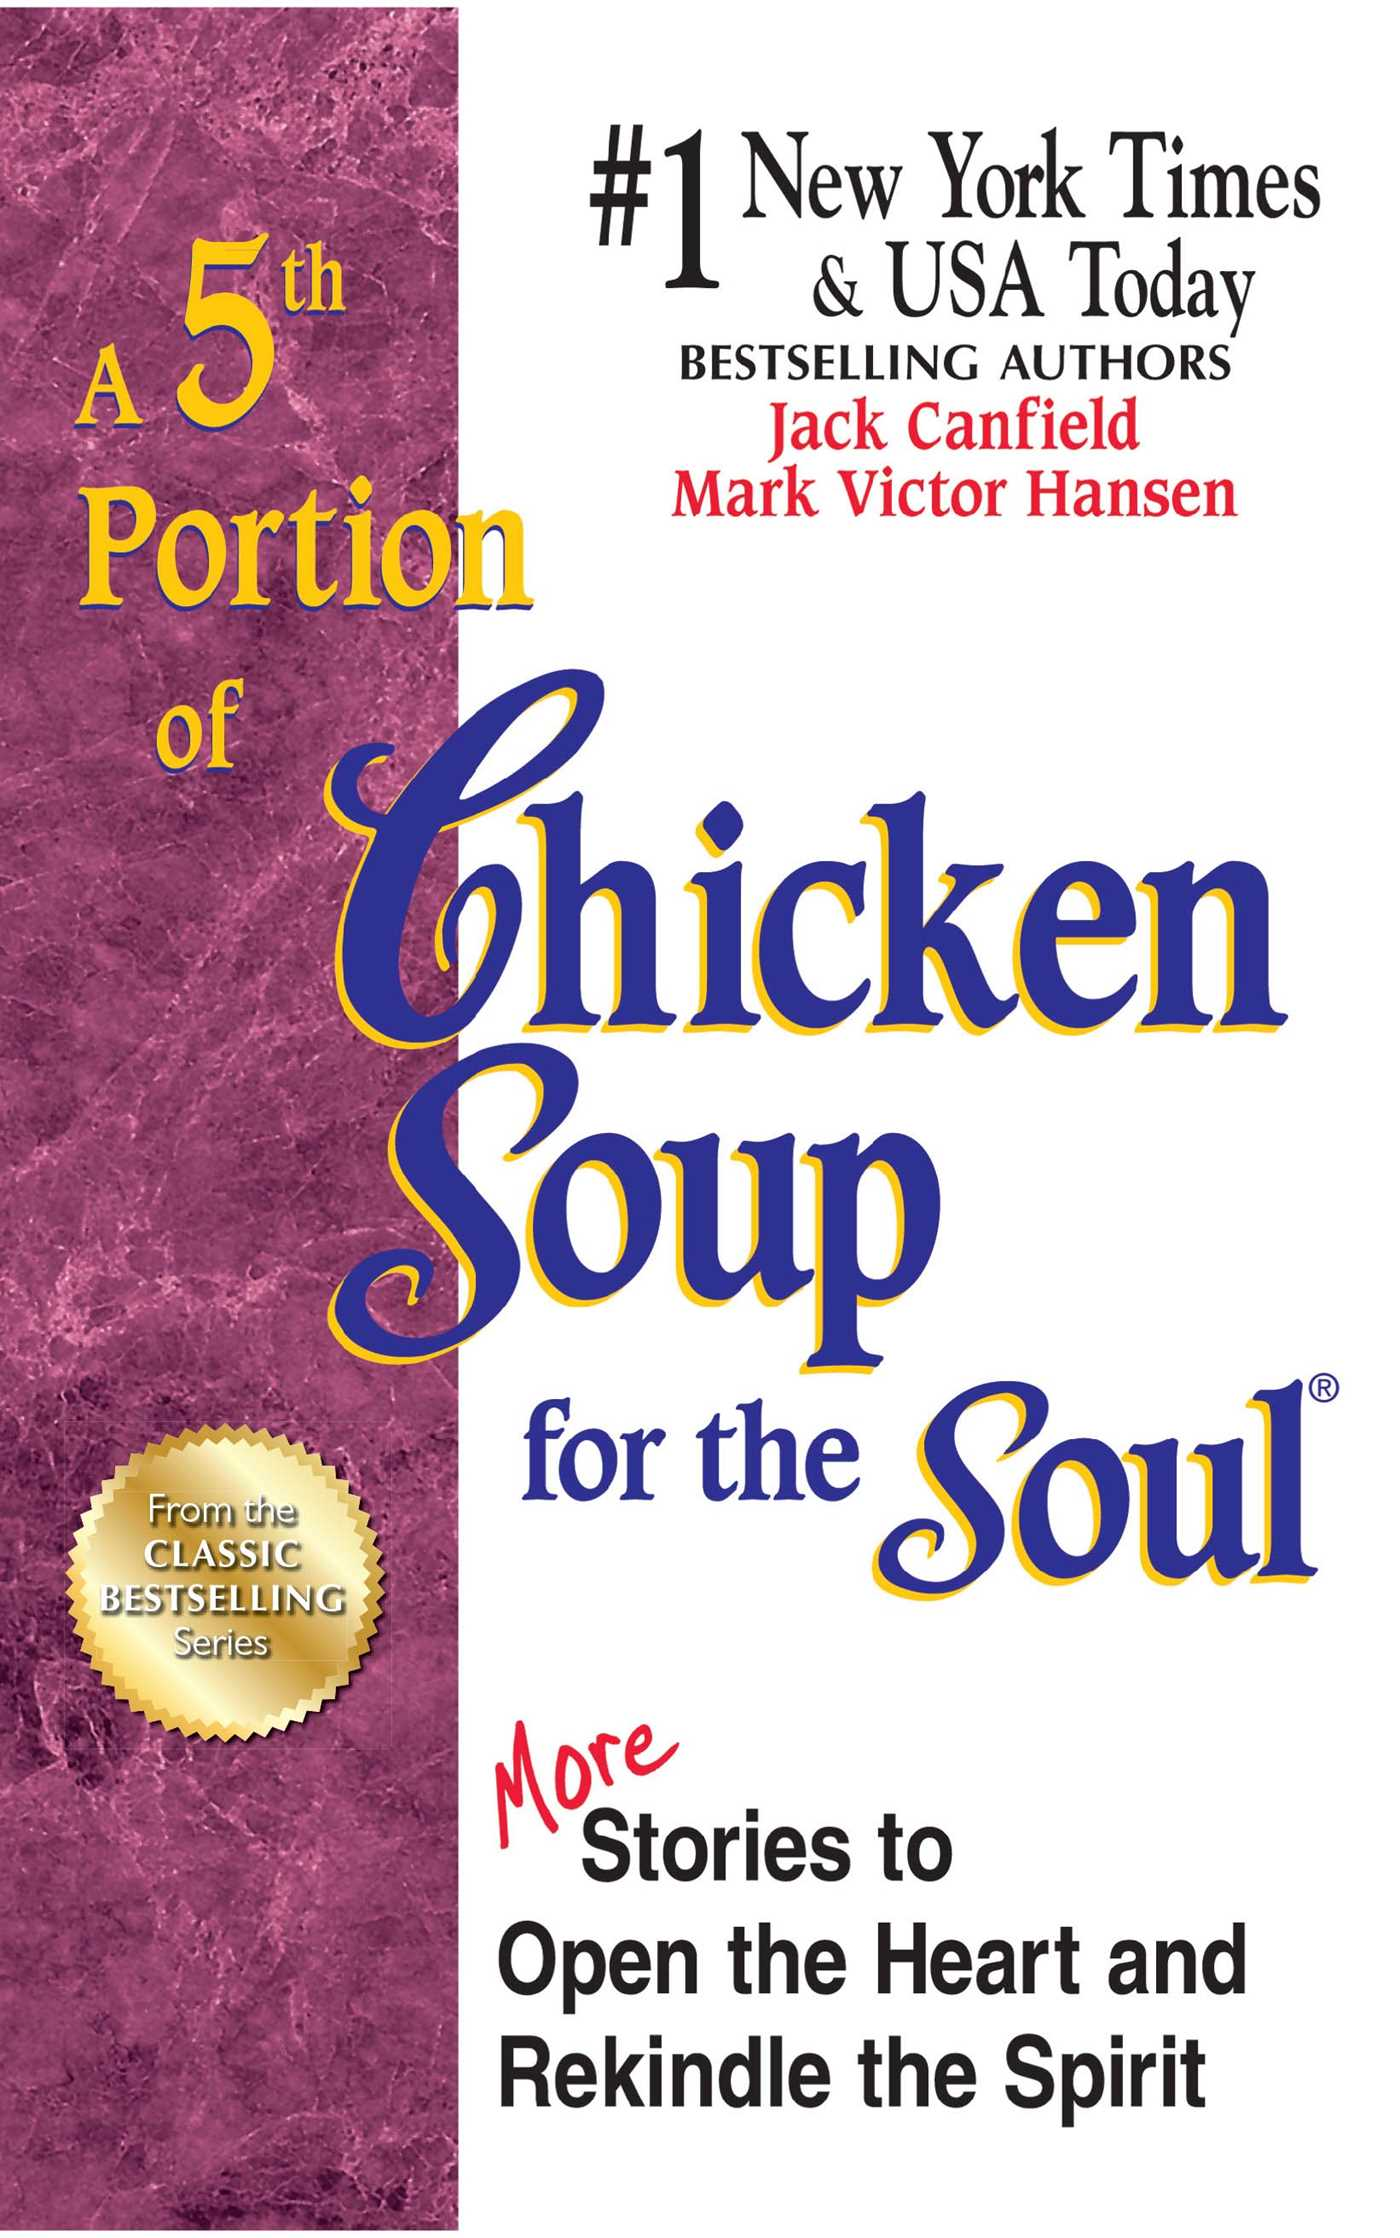 A-5th-portion-of-chicken-soup-for-the-soul-9781623610500_hr